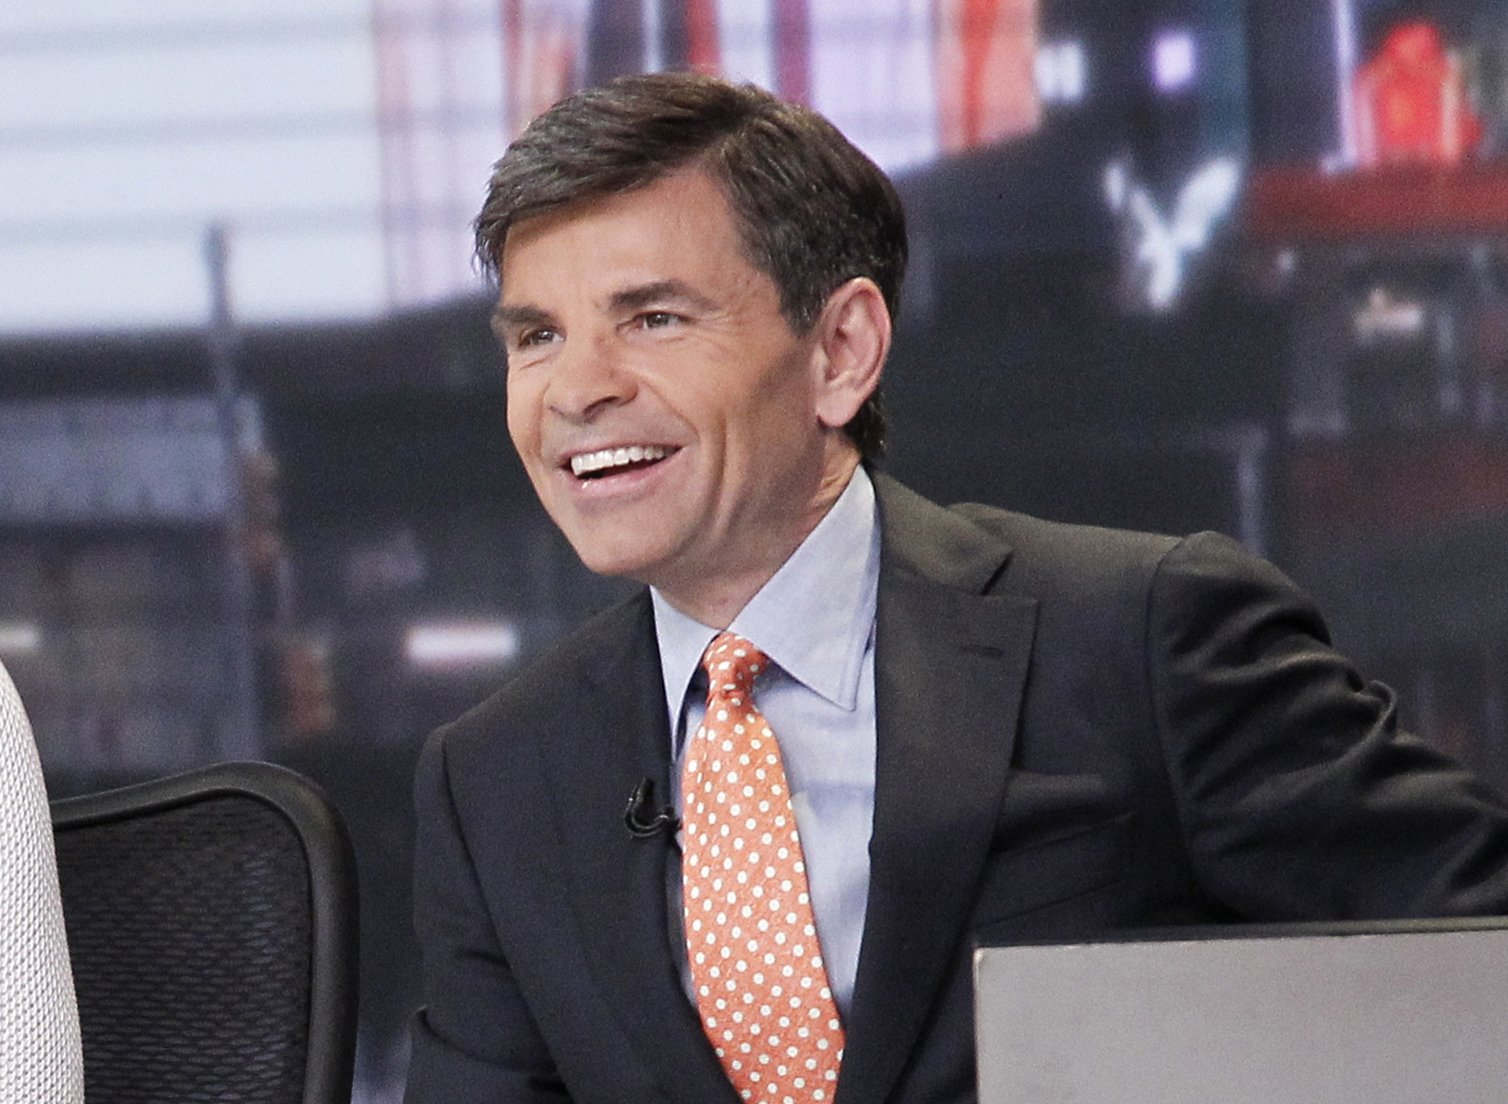 Unusually tense interview between Stephanopoulos, Trump aide